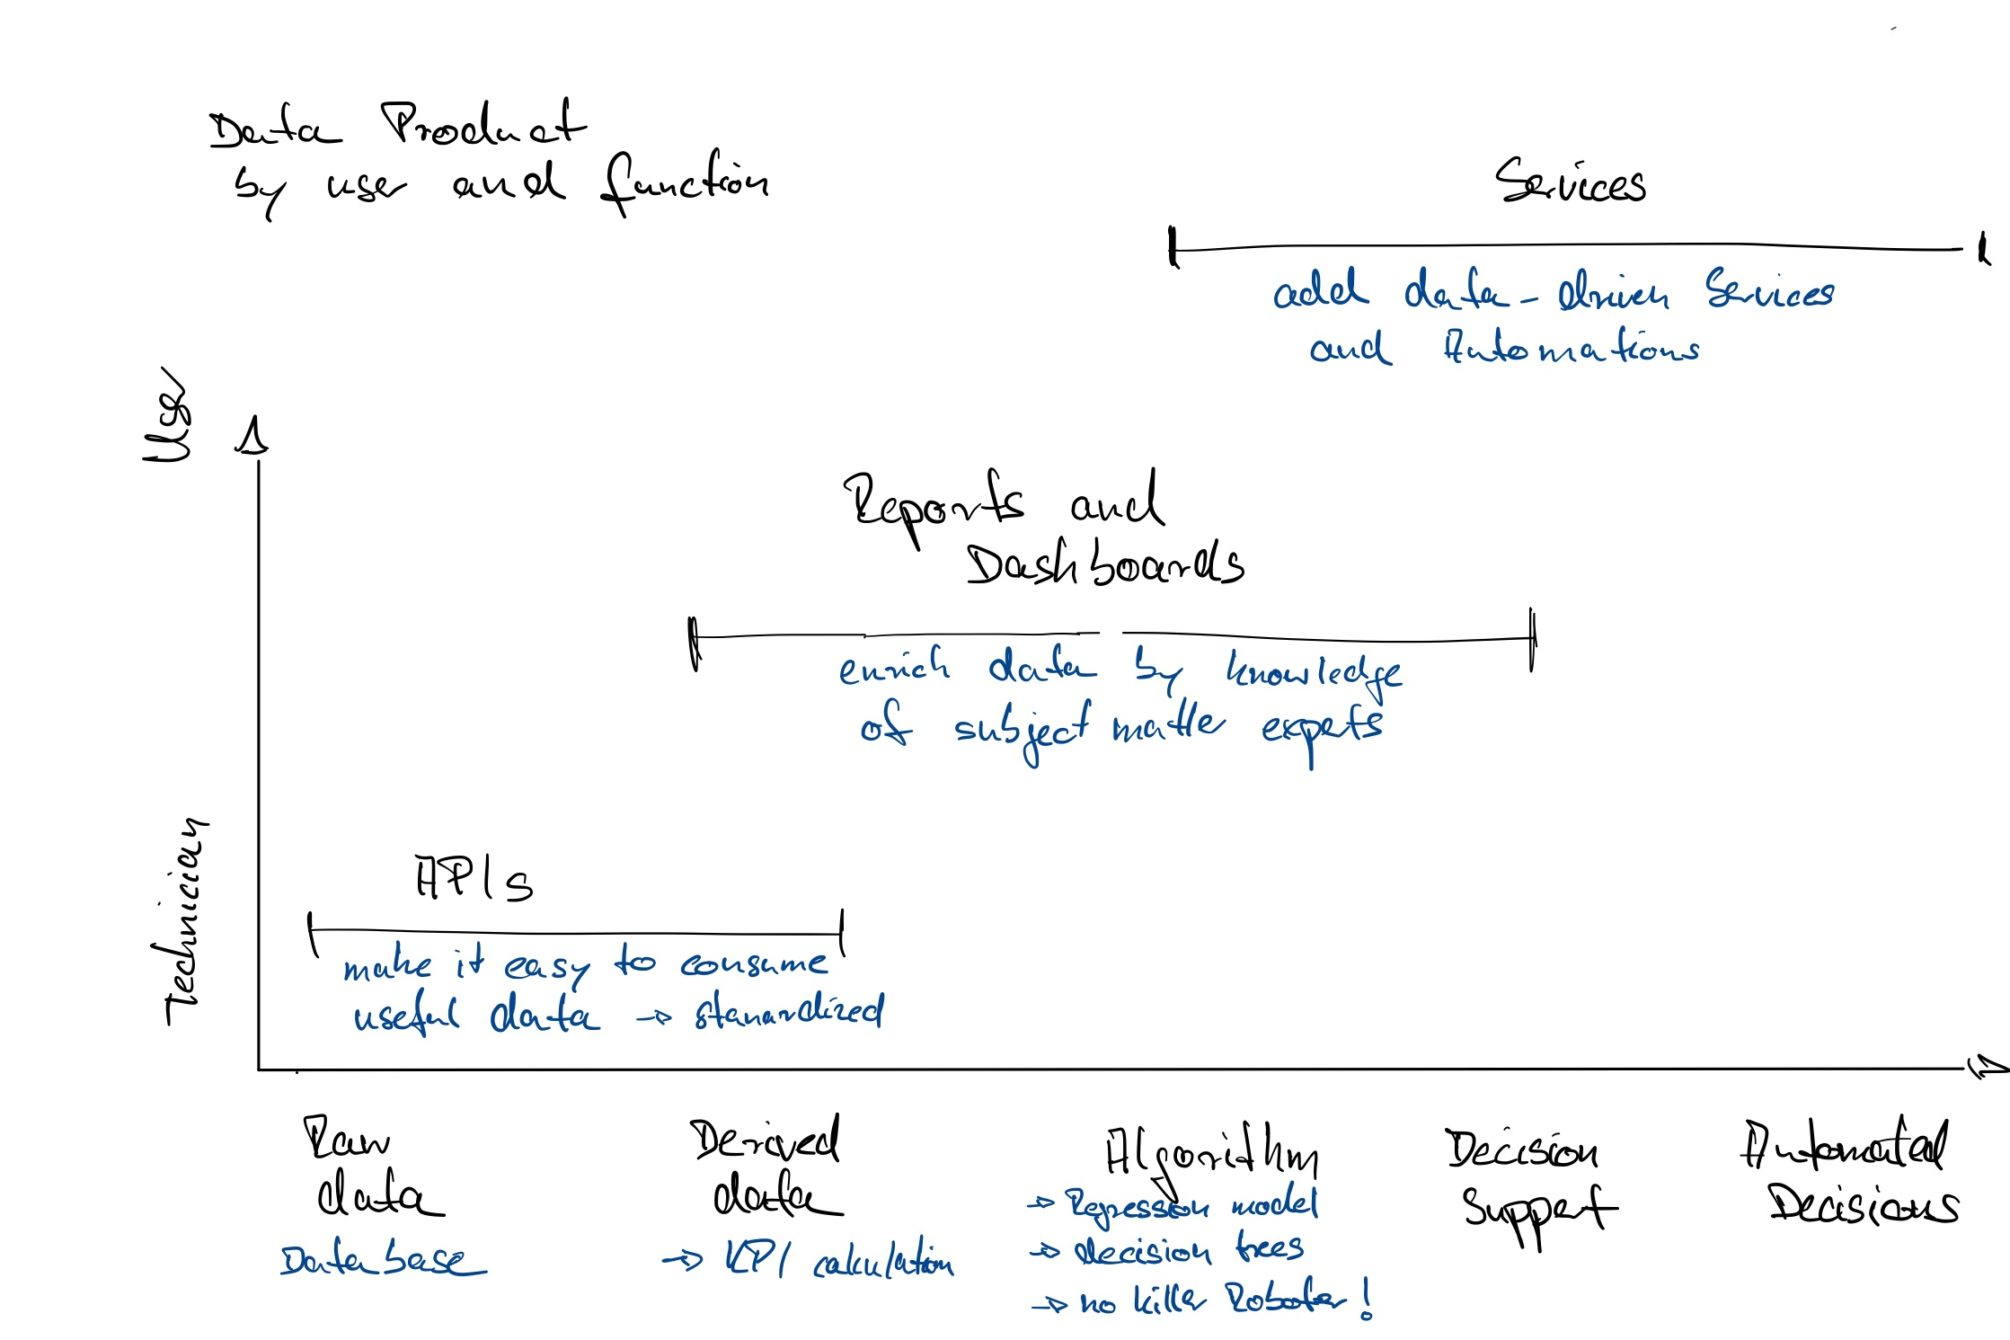 Data Product by user and function